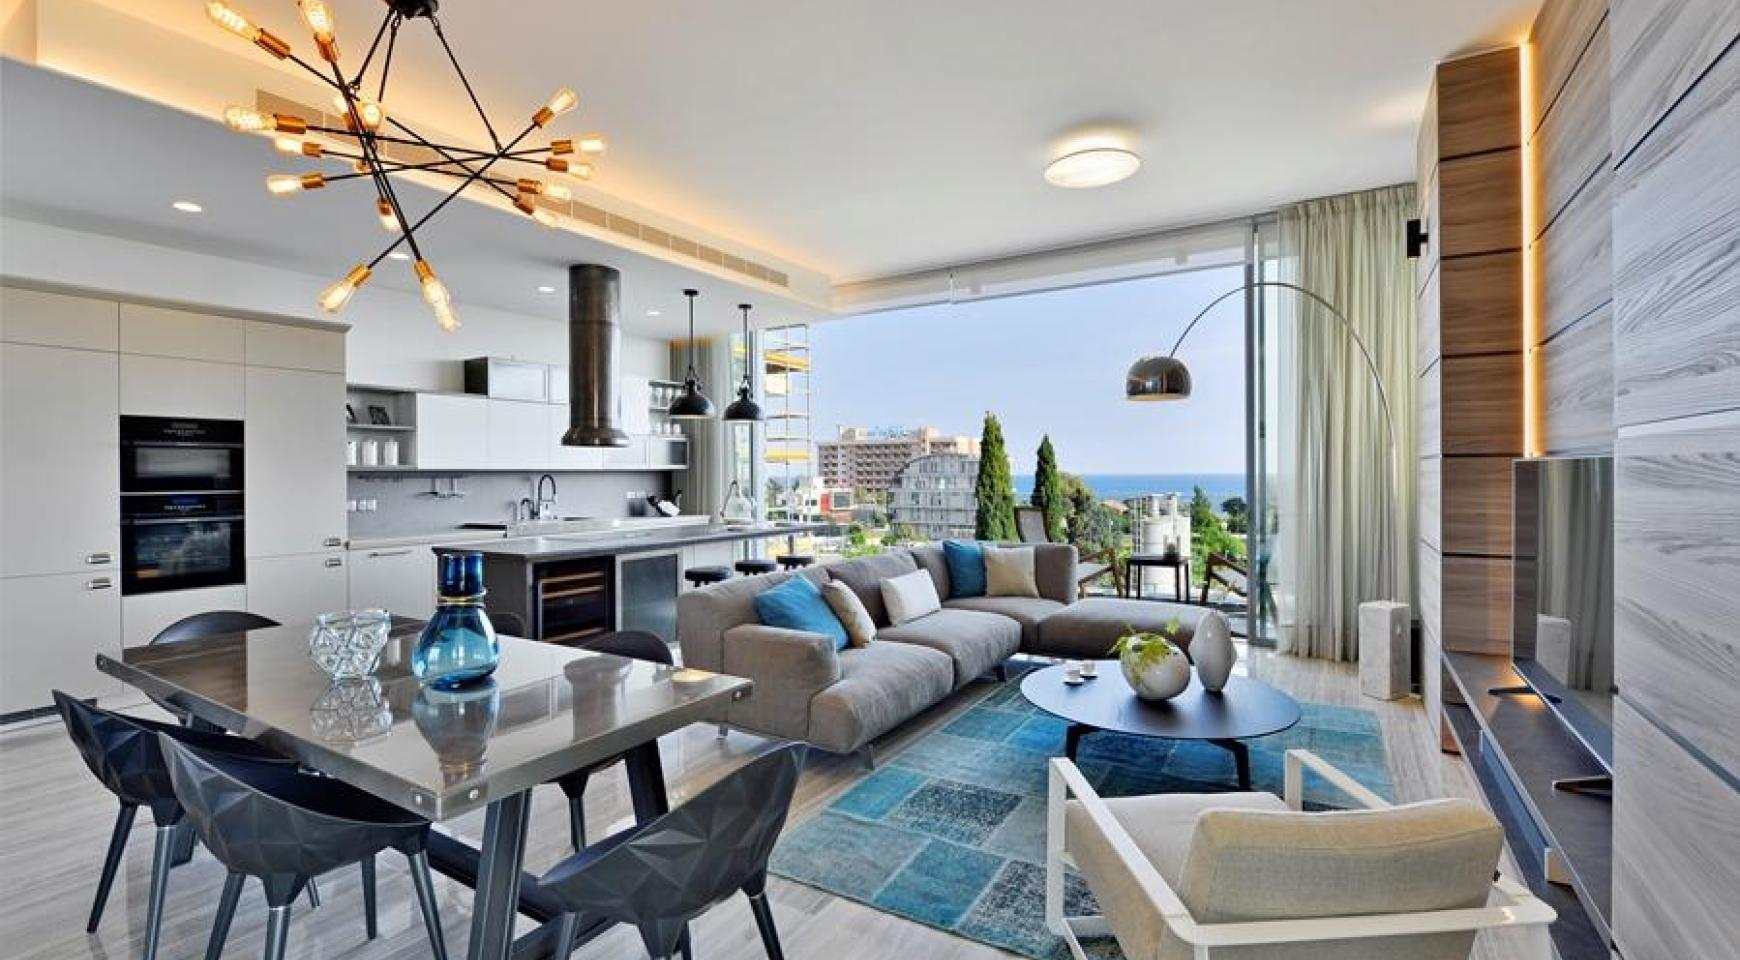 Luxurious Duplex Penthouse with Private Roof Garden near the Sea - 1